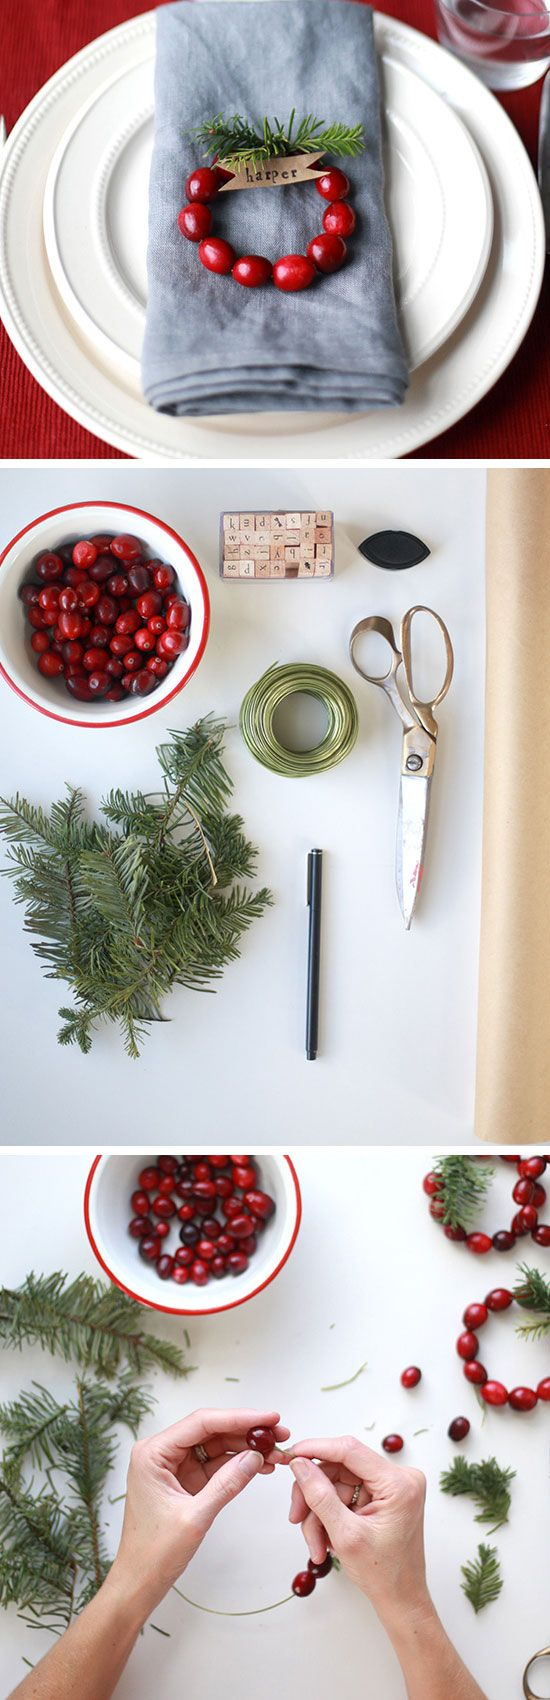 DIY Mini Cranberry Wreath Place Cards | Click for 30 DIY Christmas Table Centerpiece Ideas | DIY Christmas Table Decoration Ideas